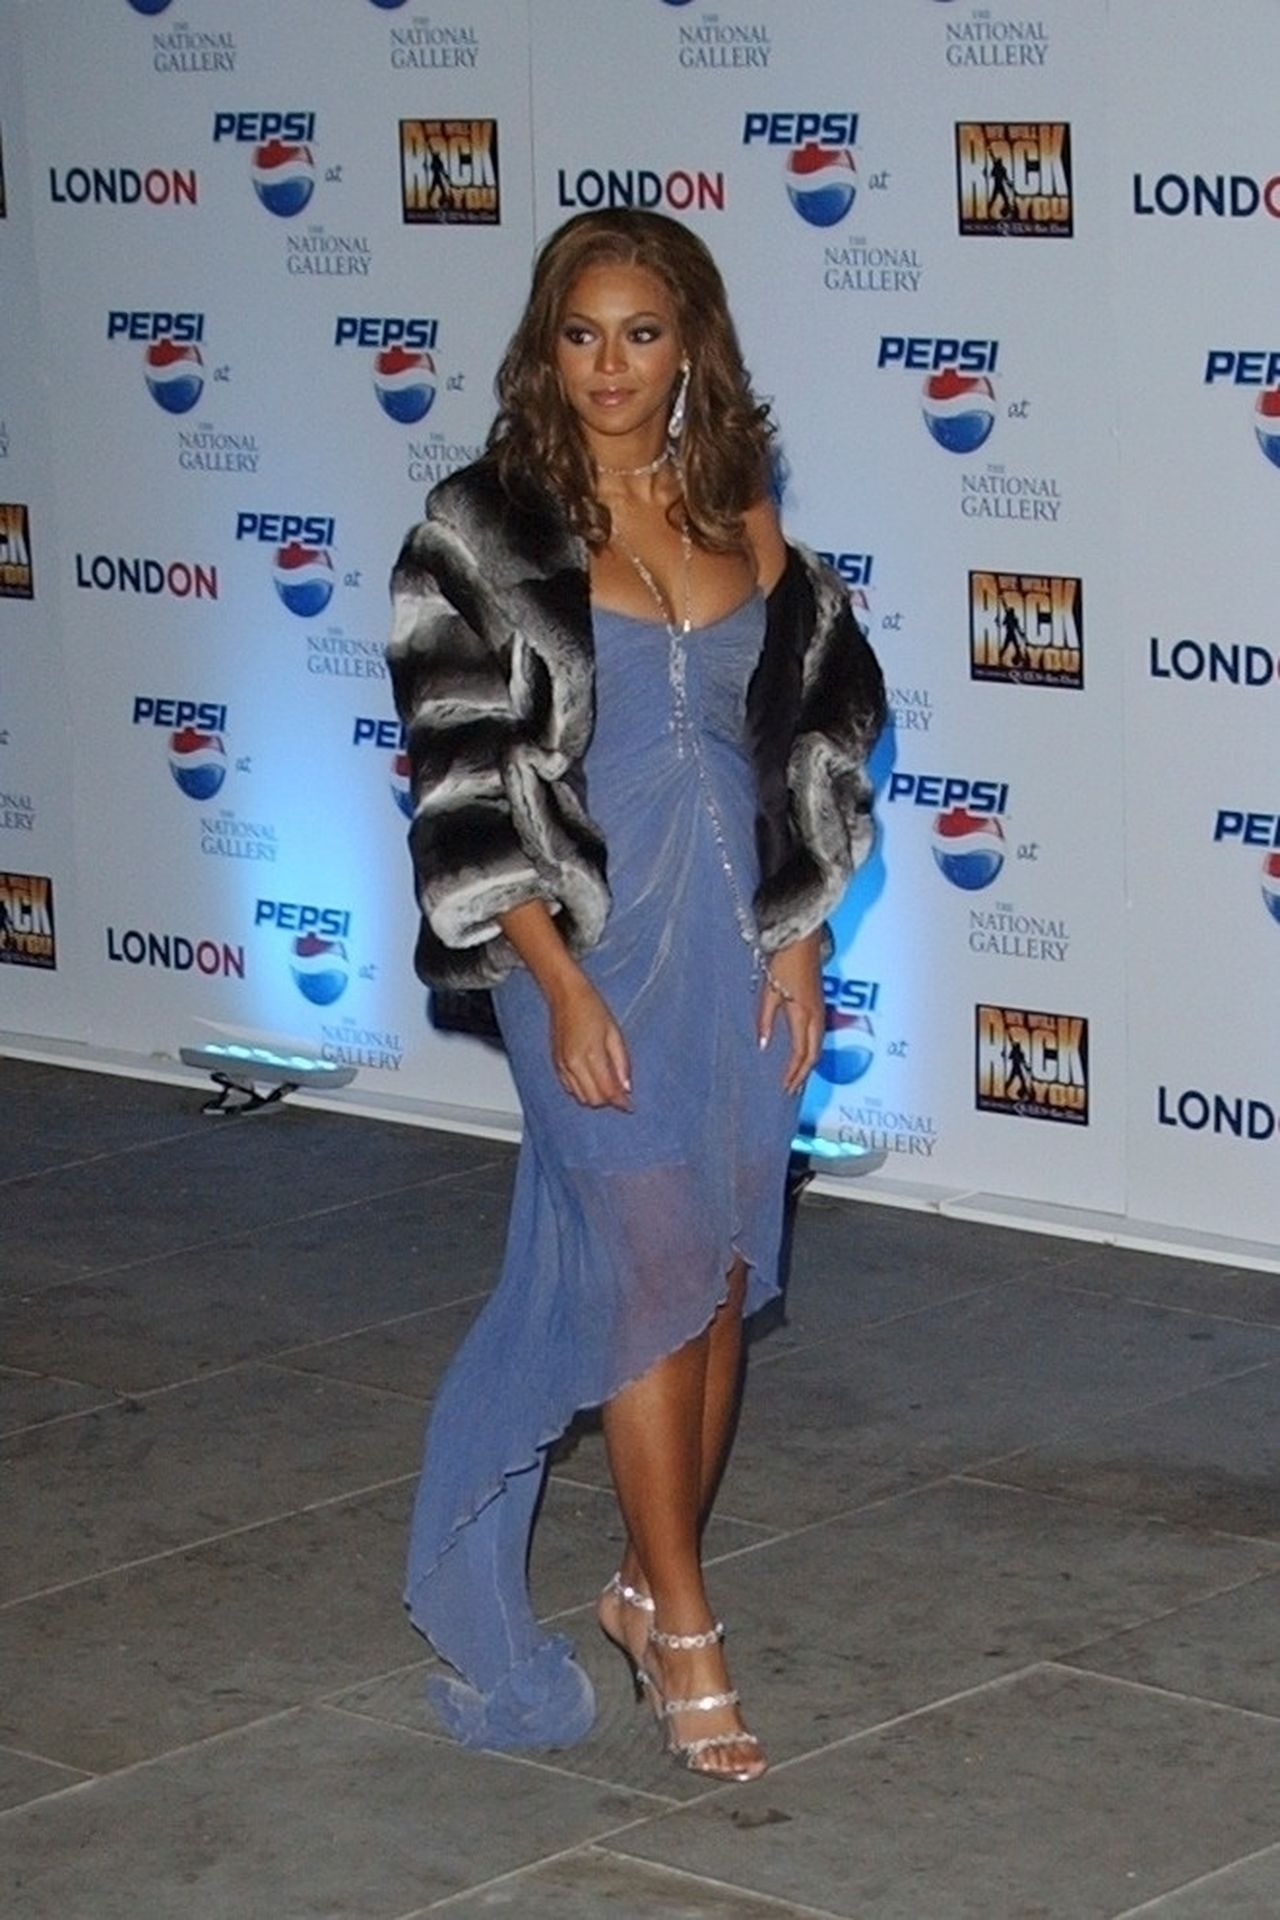 Beyonce Displays Her Cleavage At Pepsi Event In London 0001